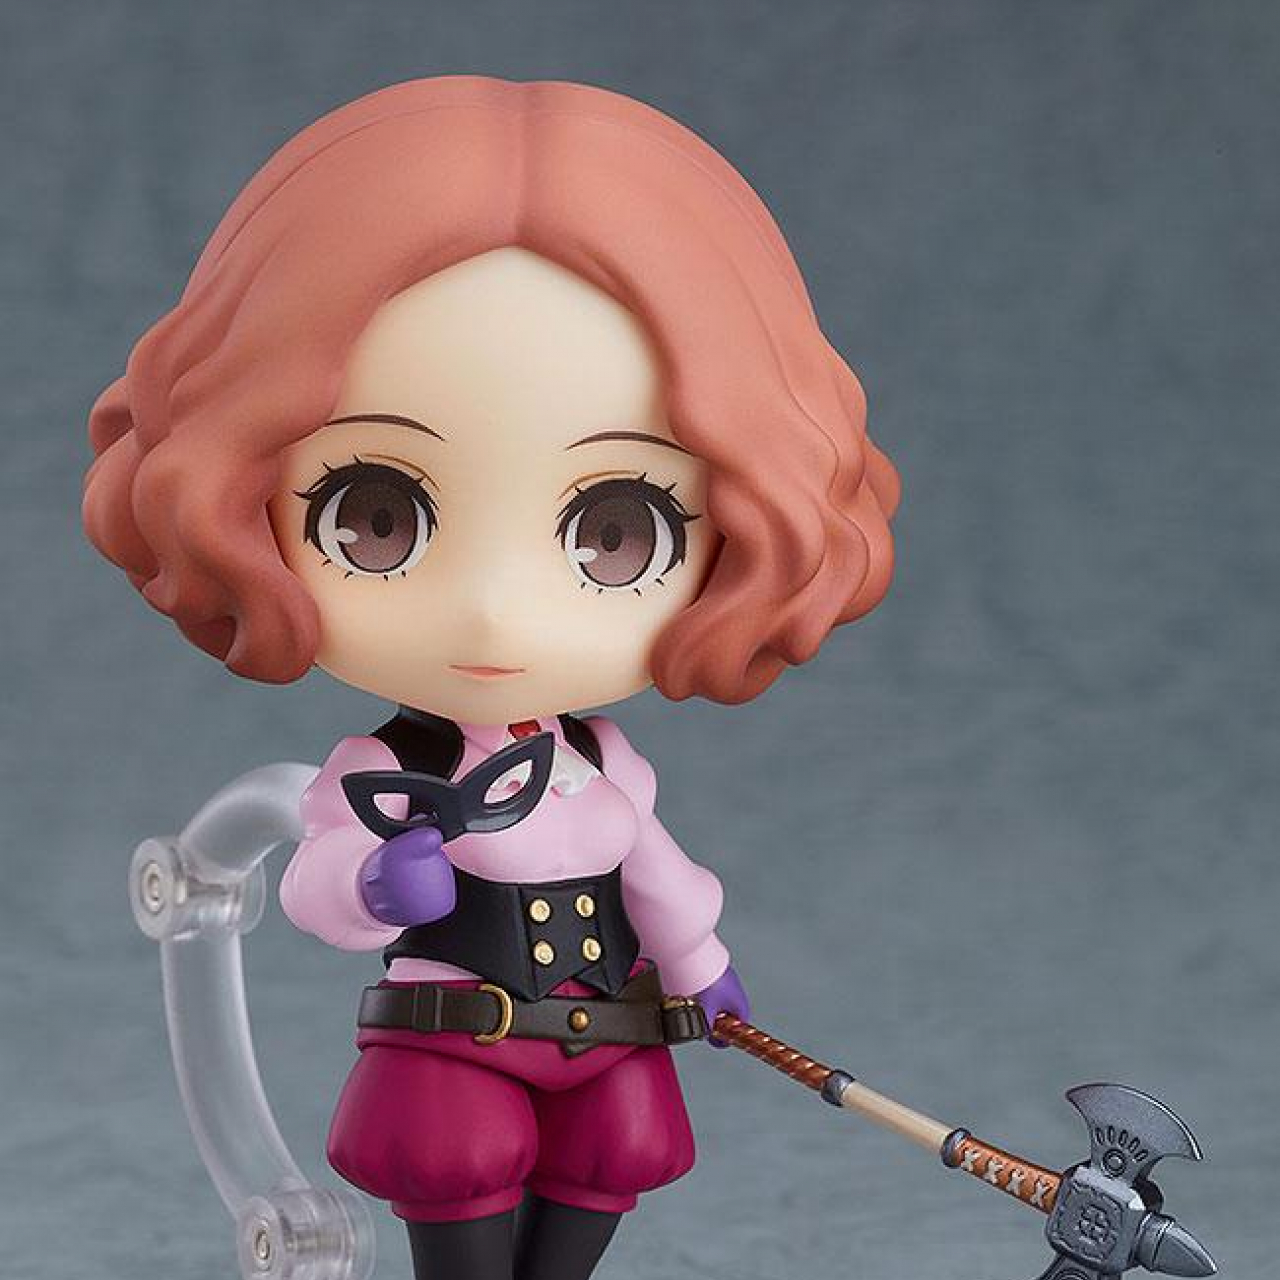 Persona 5 The Animation Nendoroid Action Figure Haru Okumura Phantom Thief Ver. 10 cm